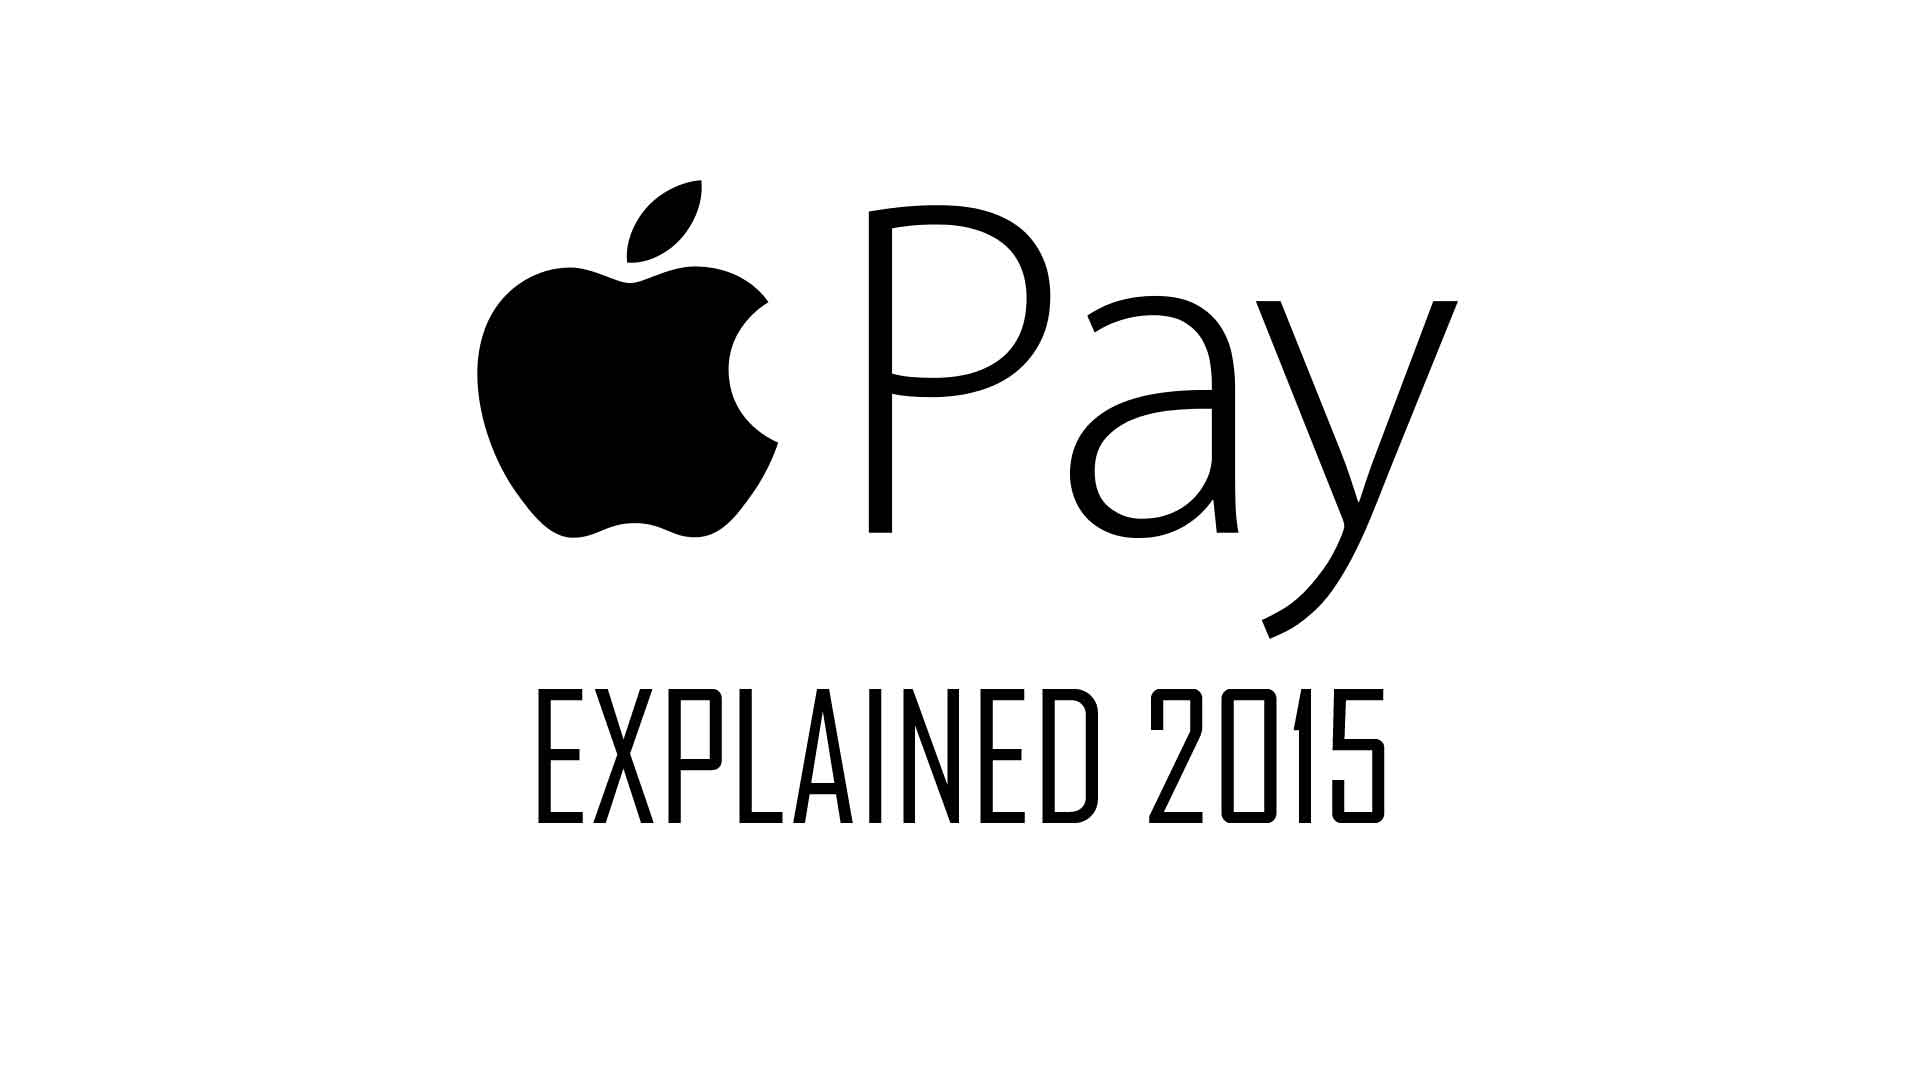 Apple pay explained 2015